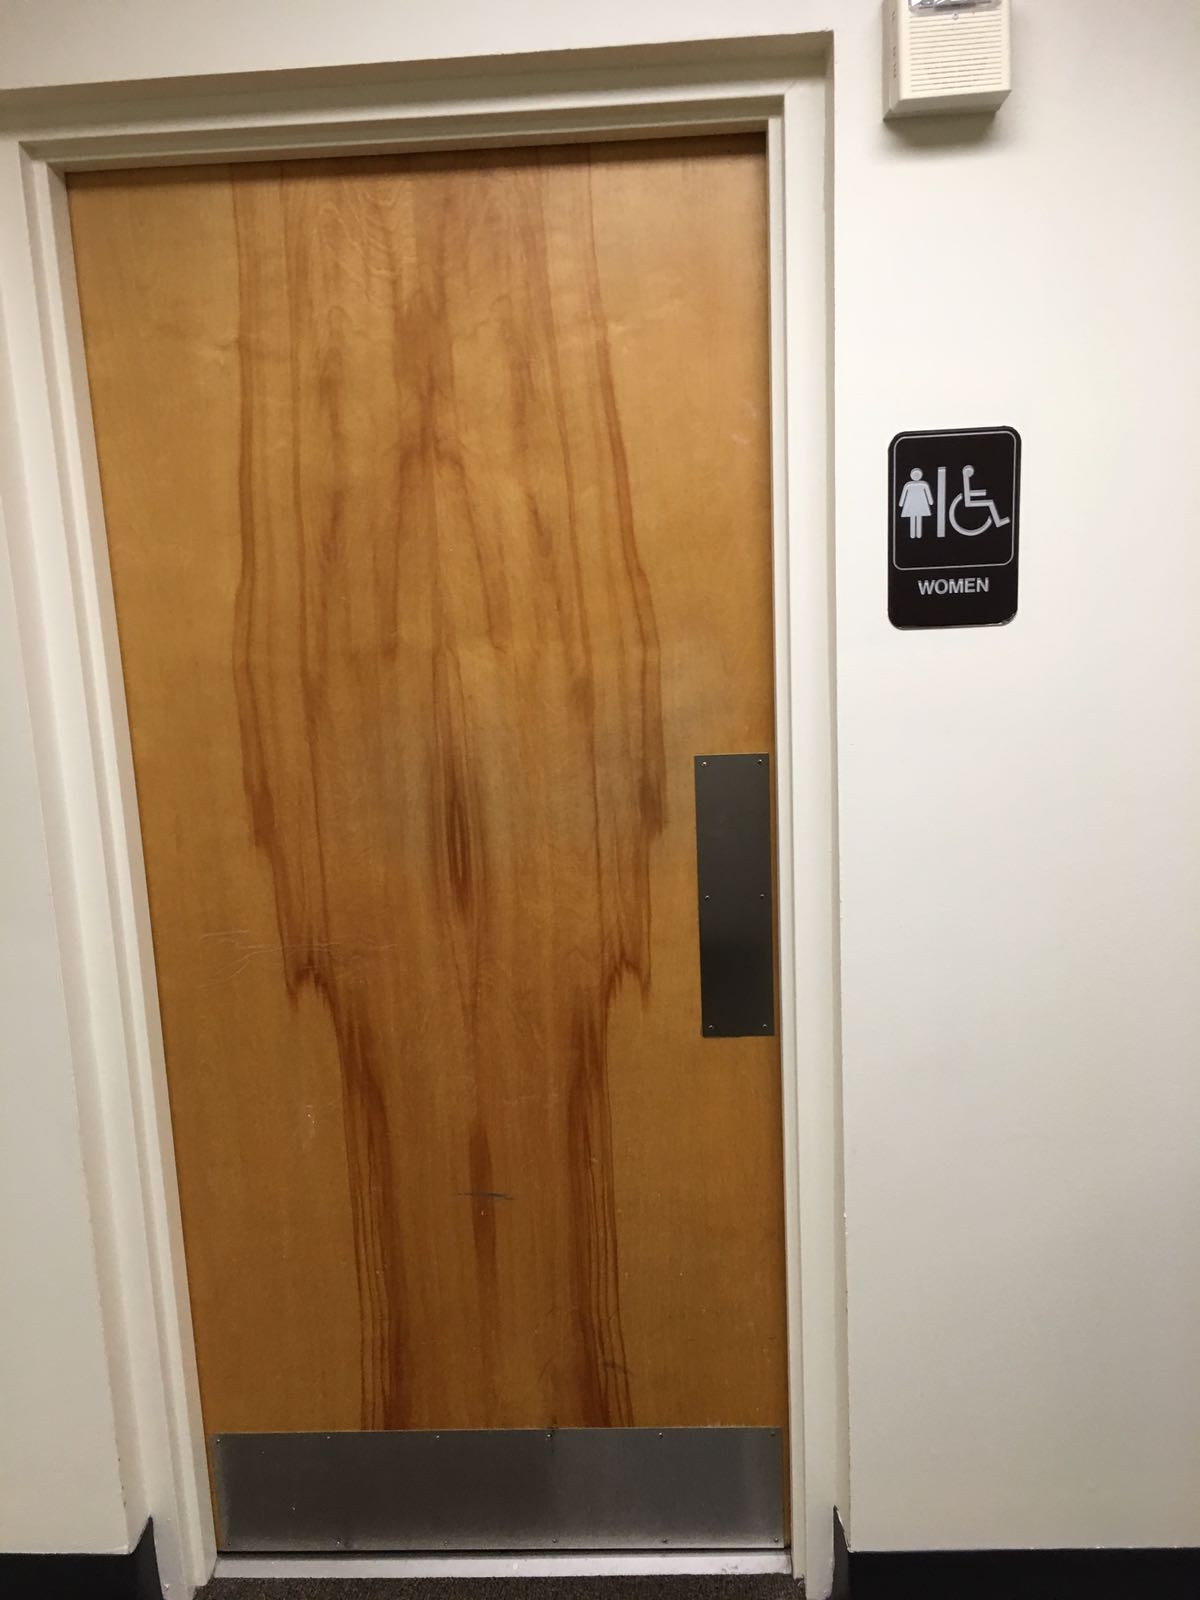 These Bathroom Doors Have Very Appropriate Wood Grain The Poke